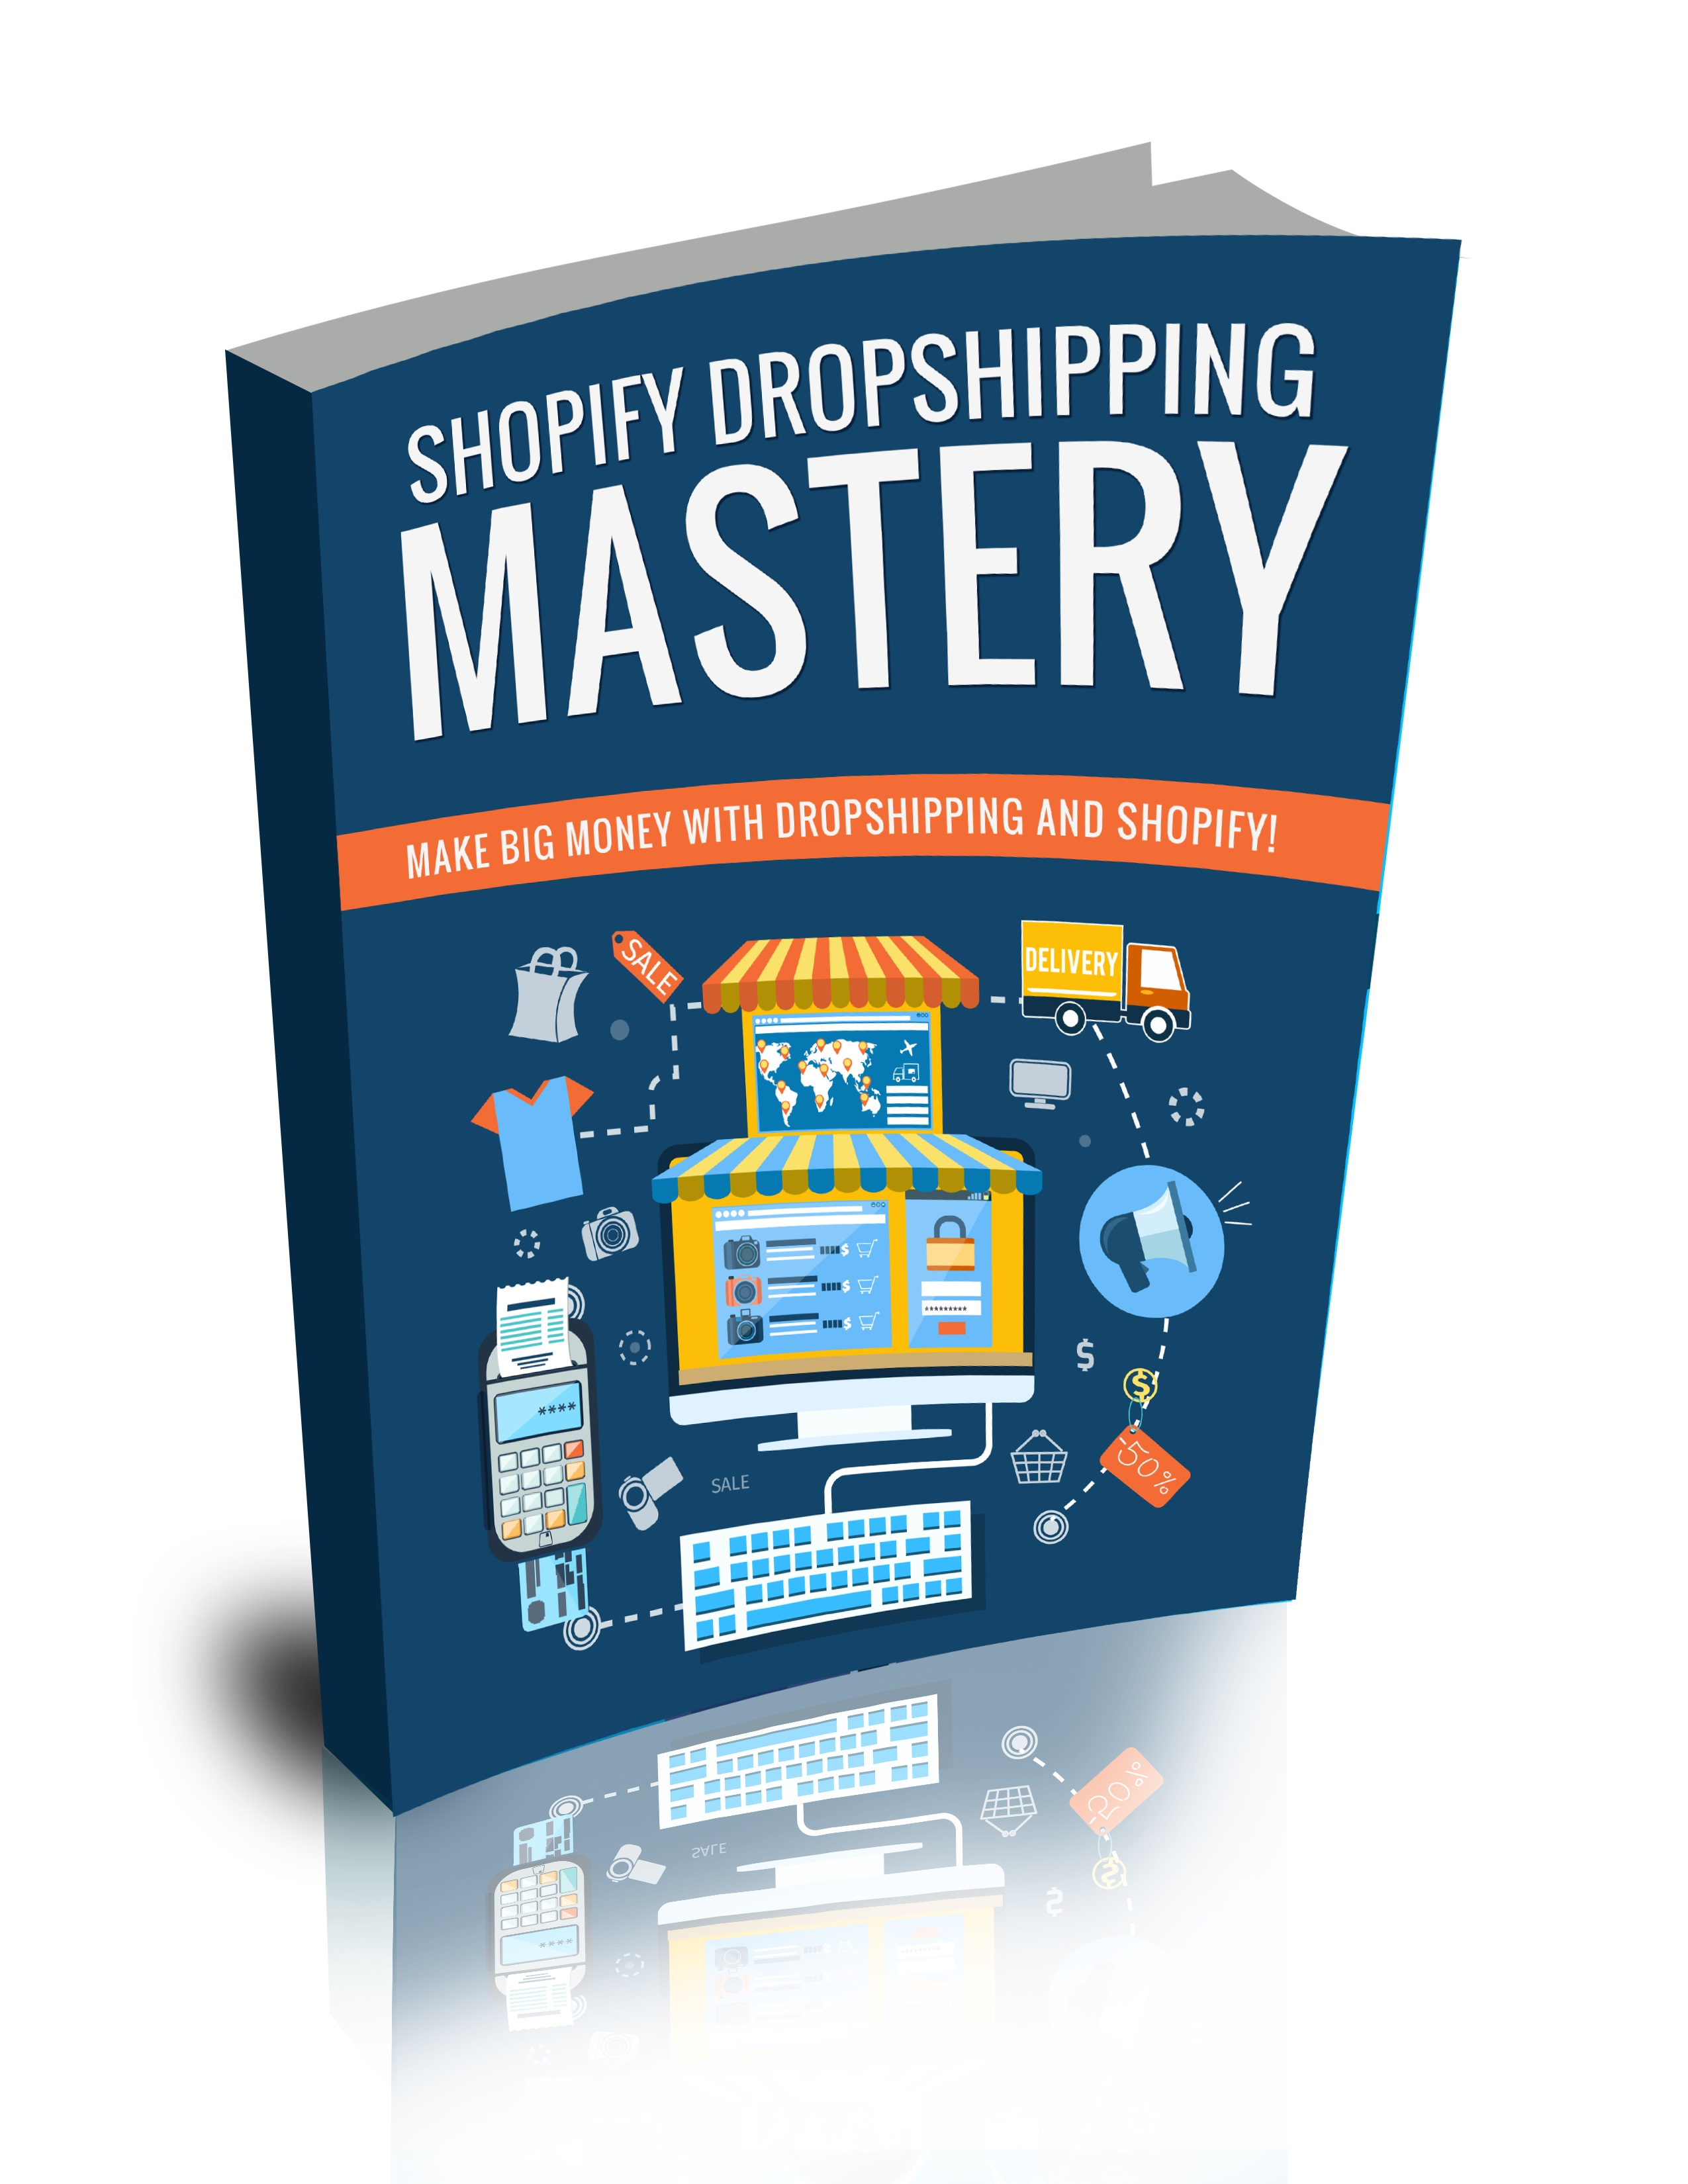 Shopify Dropshipping Mastery Package